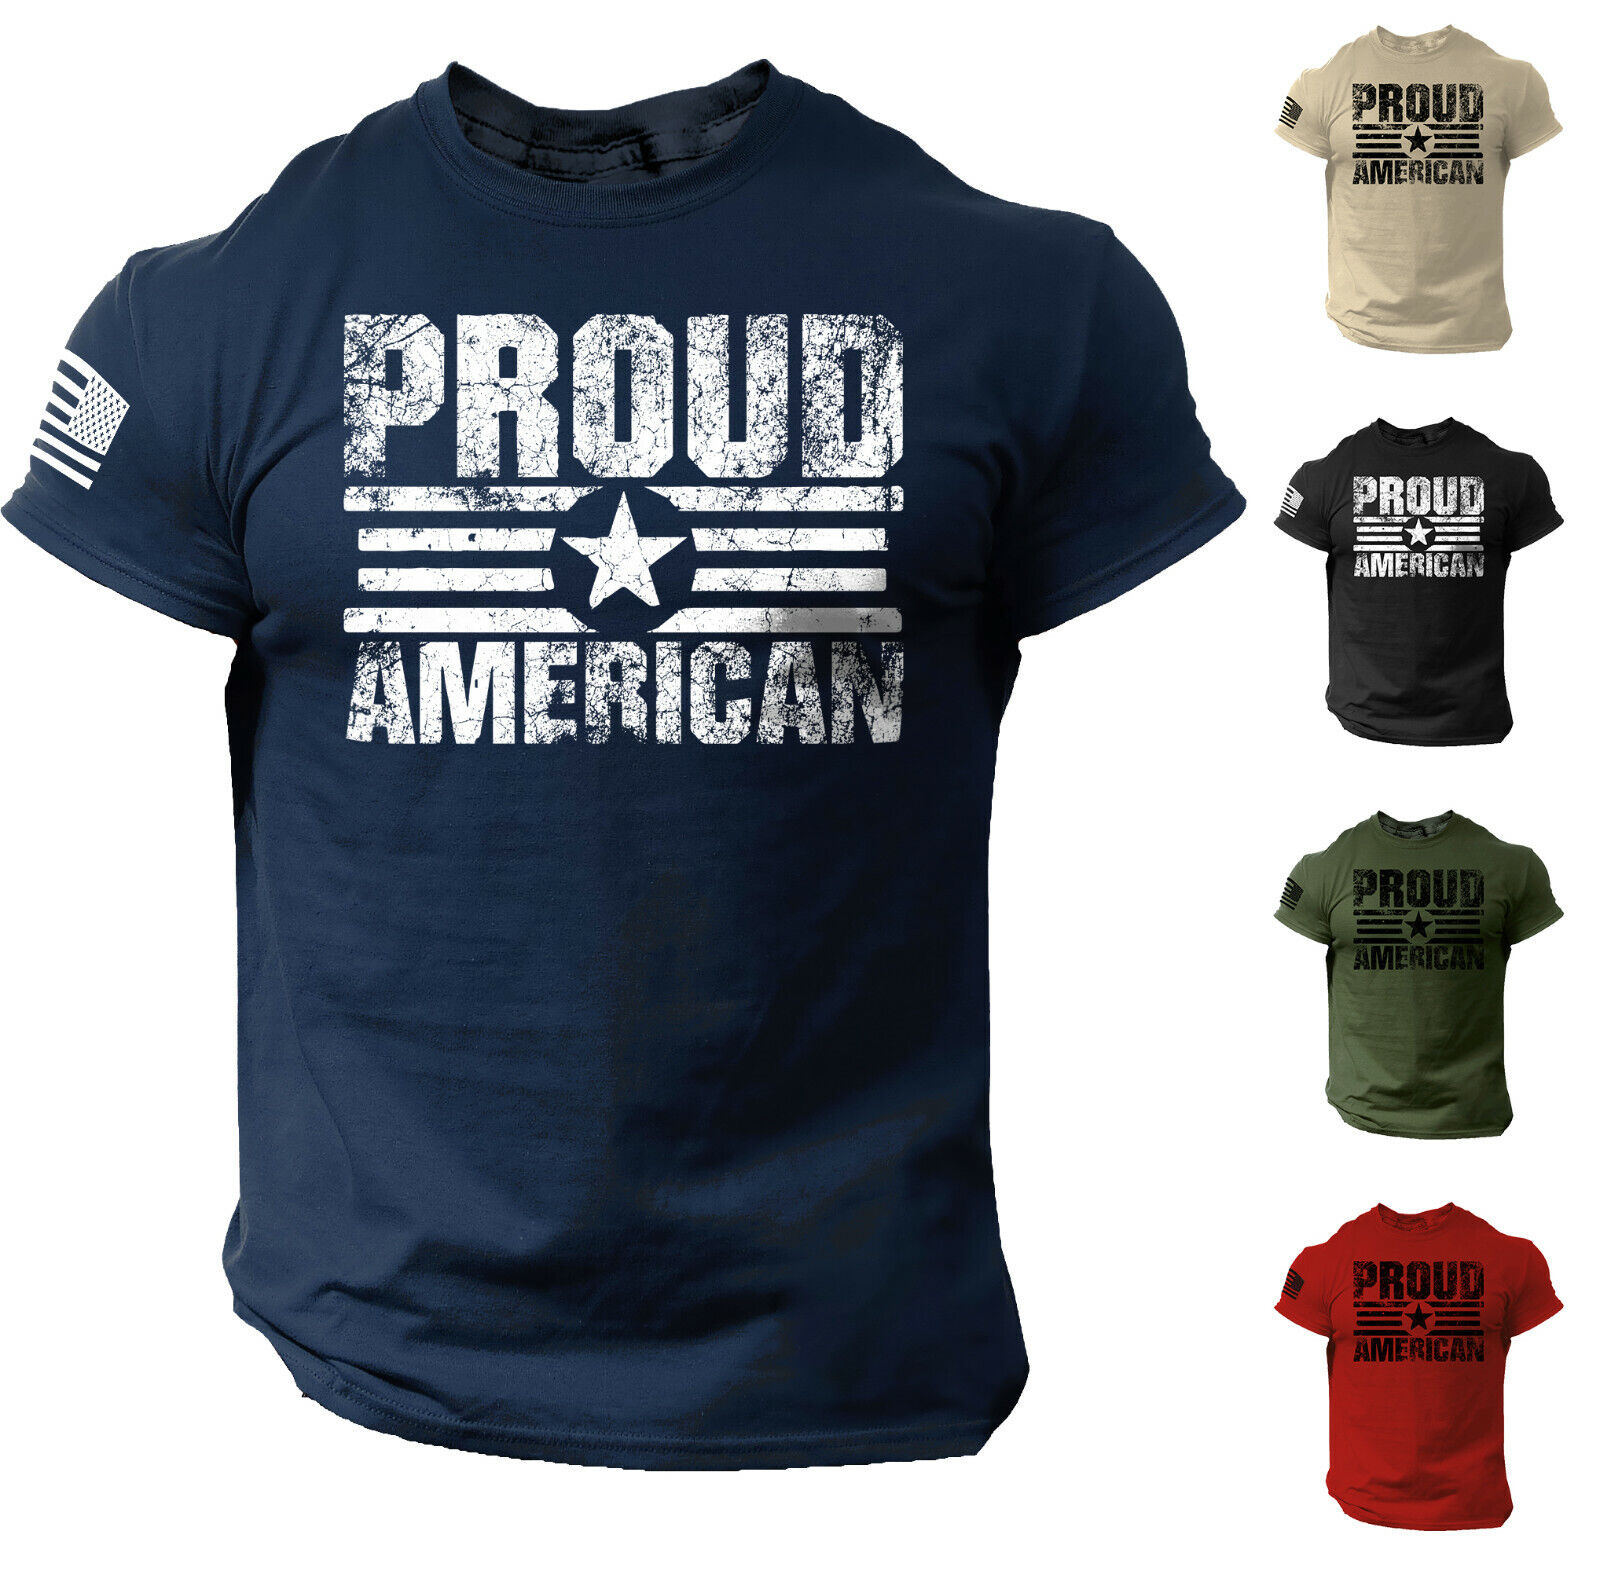 Proud American USA Flag Distressed Men T Shirt Patriotic Cotton Tee Clothing, Shoes & Accessories